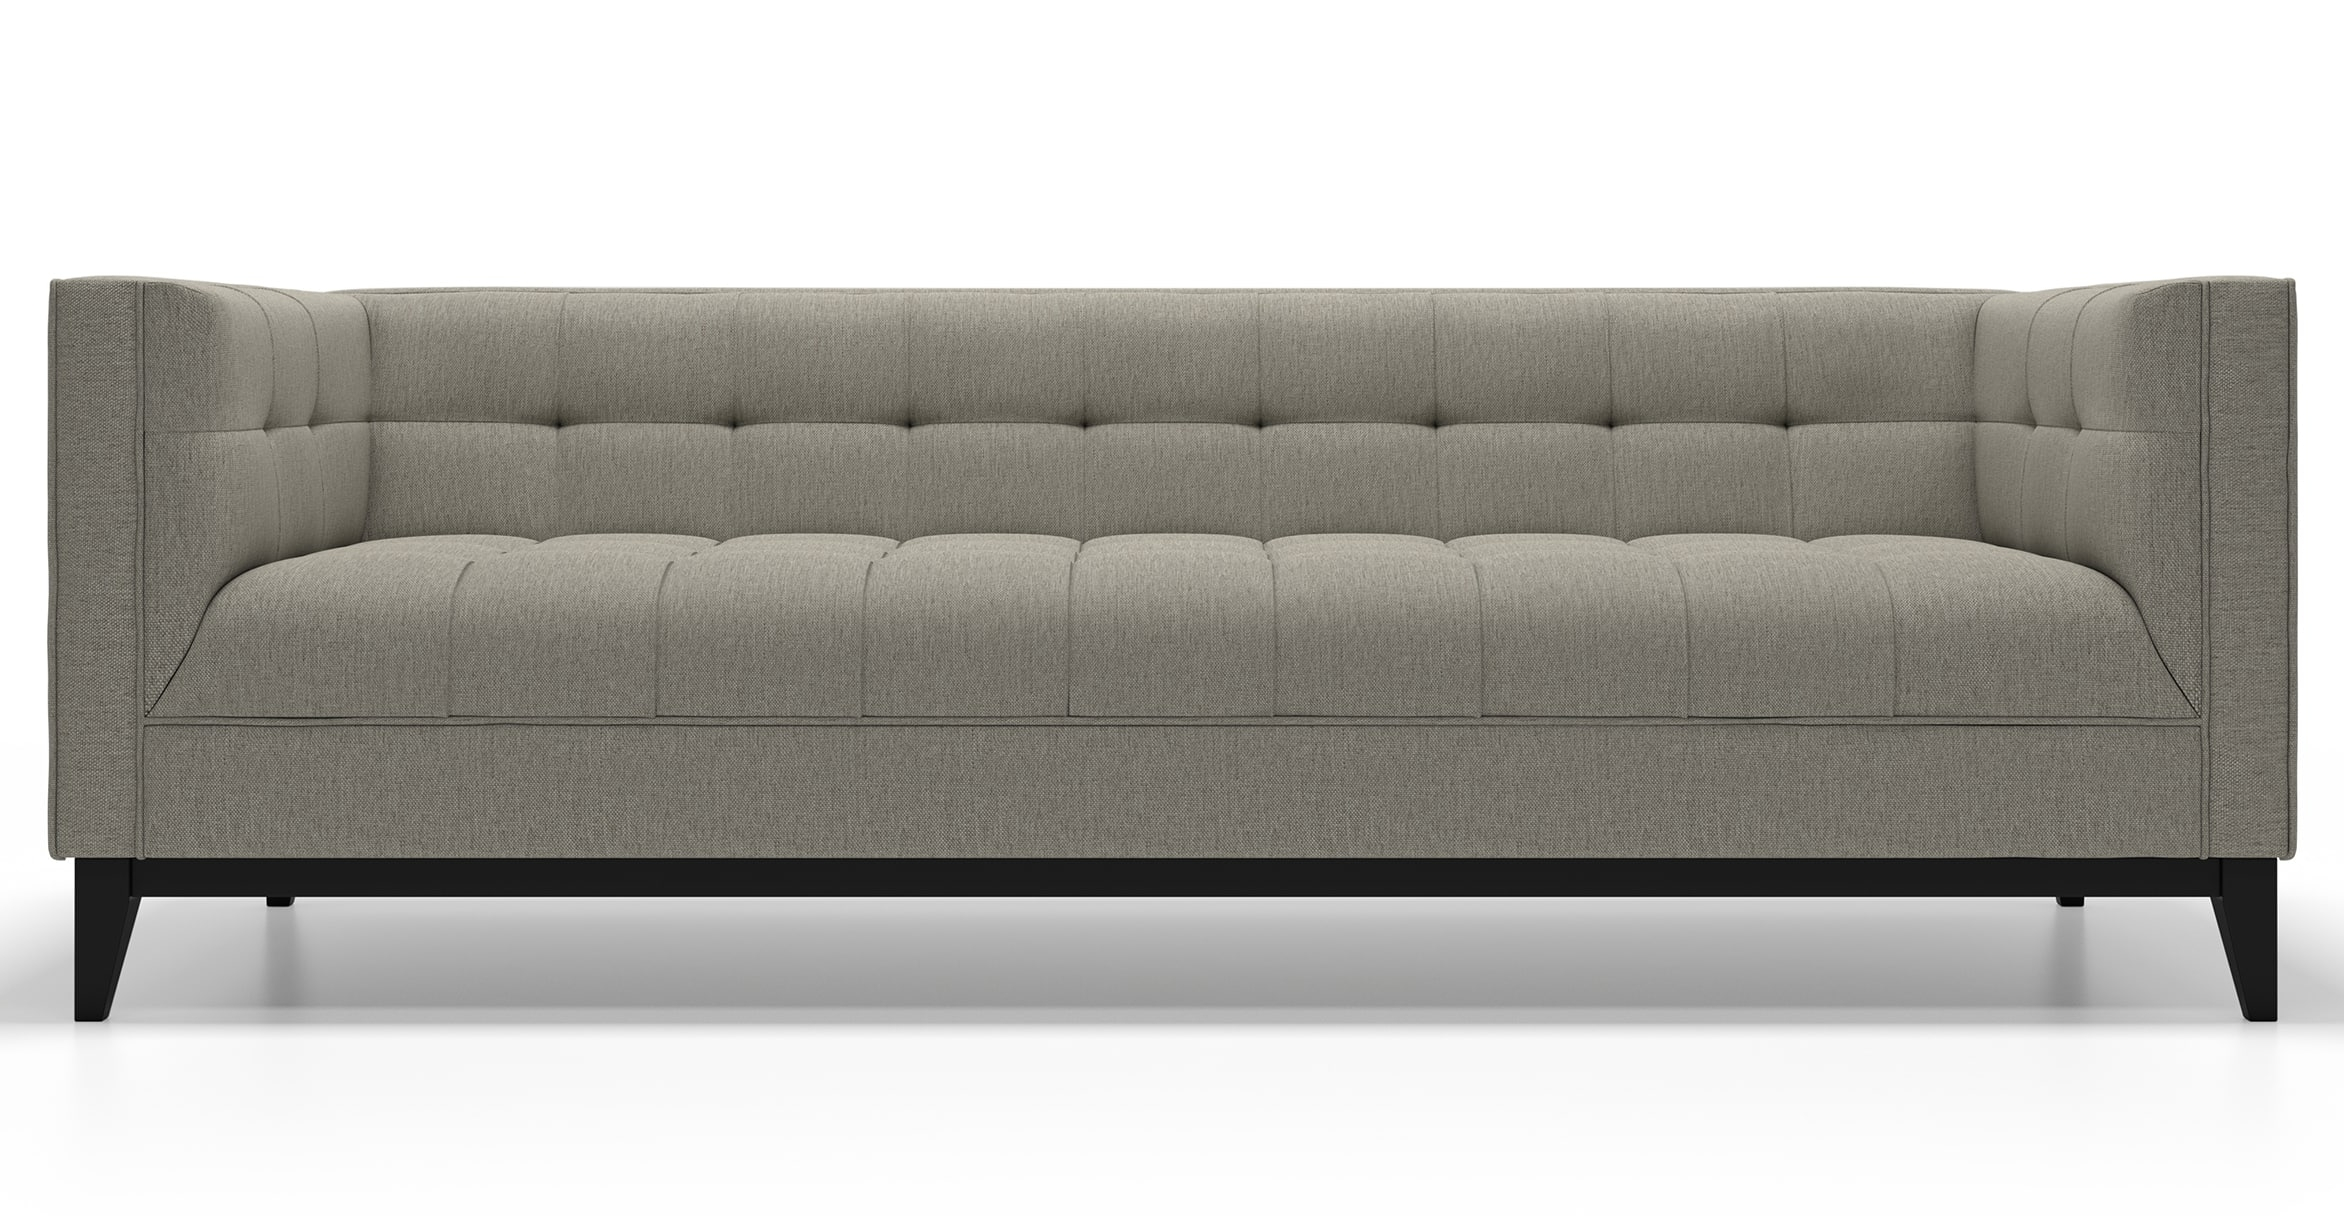 Modern Sofas Regarding Most Current Mid Century Modern Sofas, Alcott In Fabric (View 6 of 20)